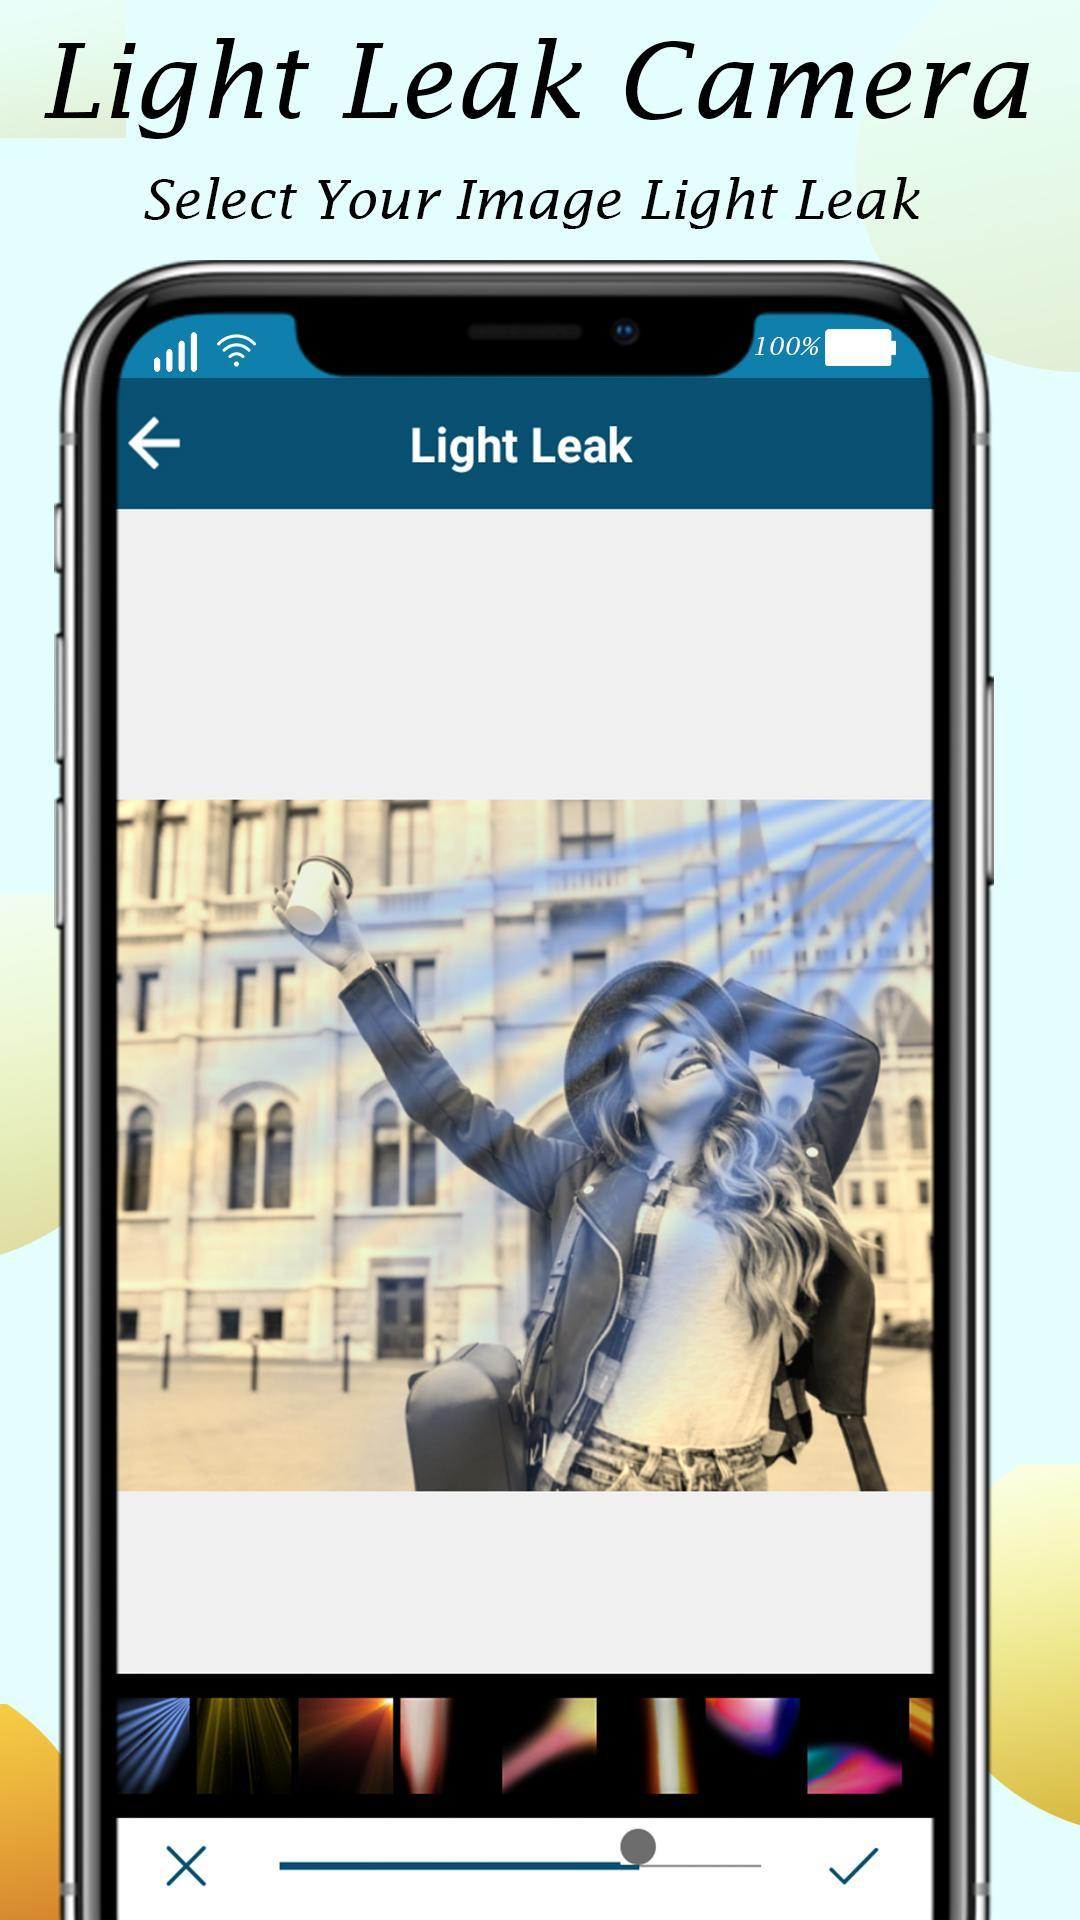 Light Leak Camera : Overlay Photo Editor for Android - APK Download